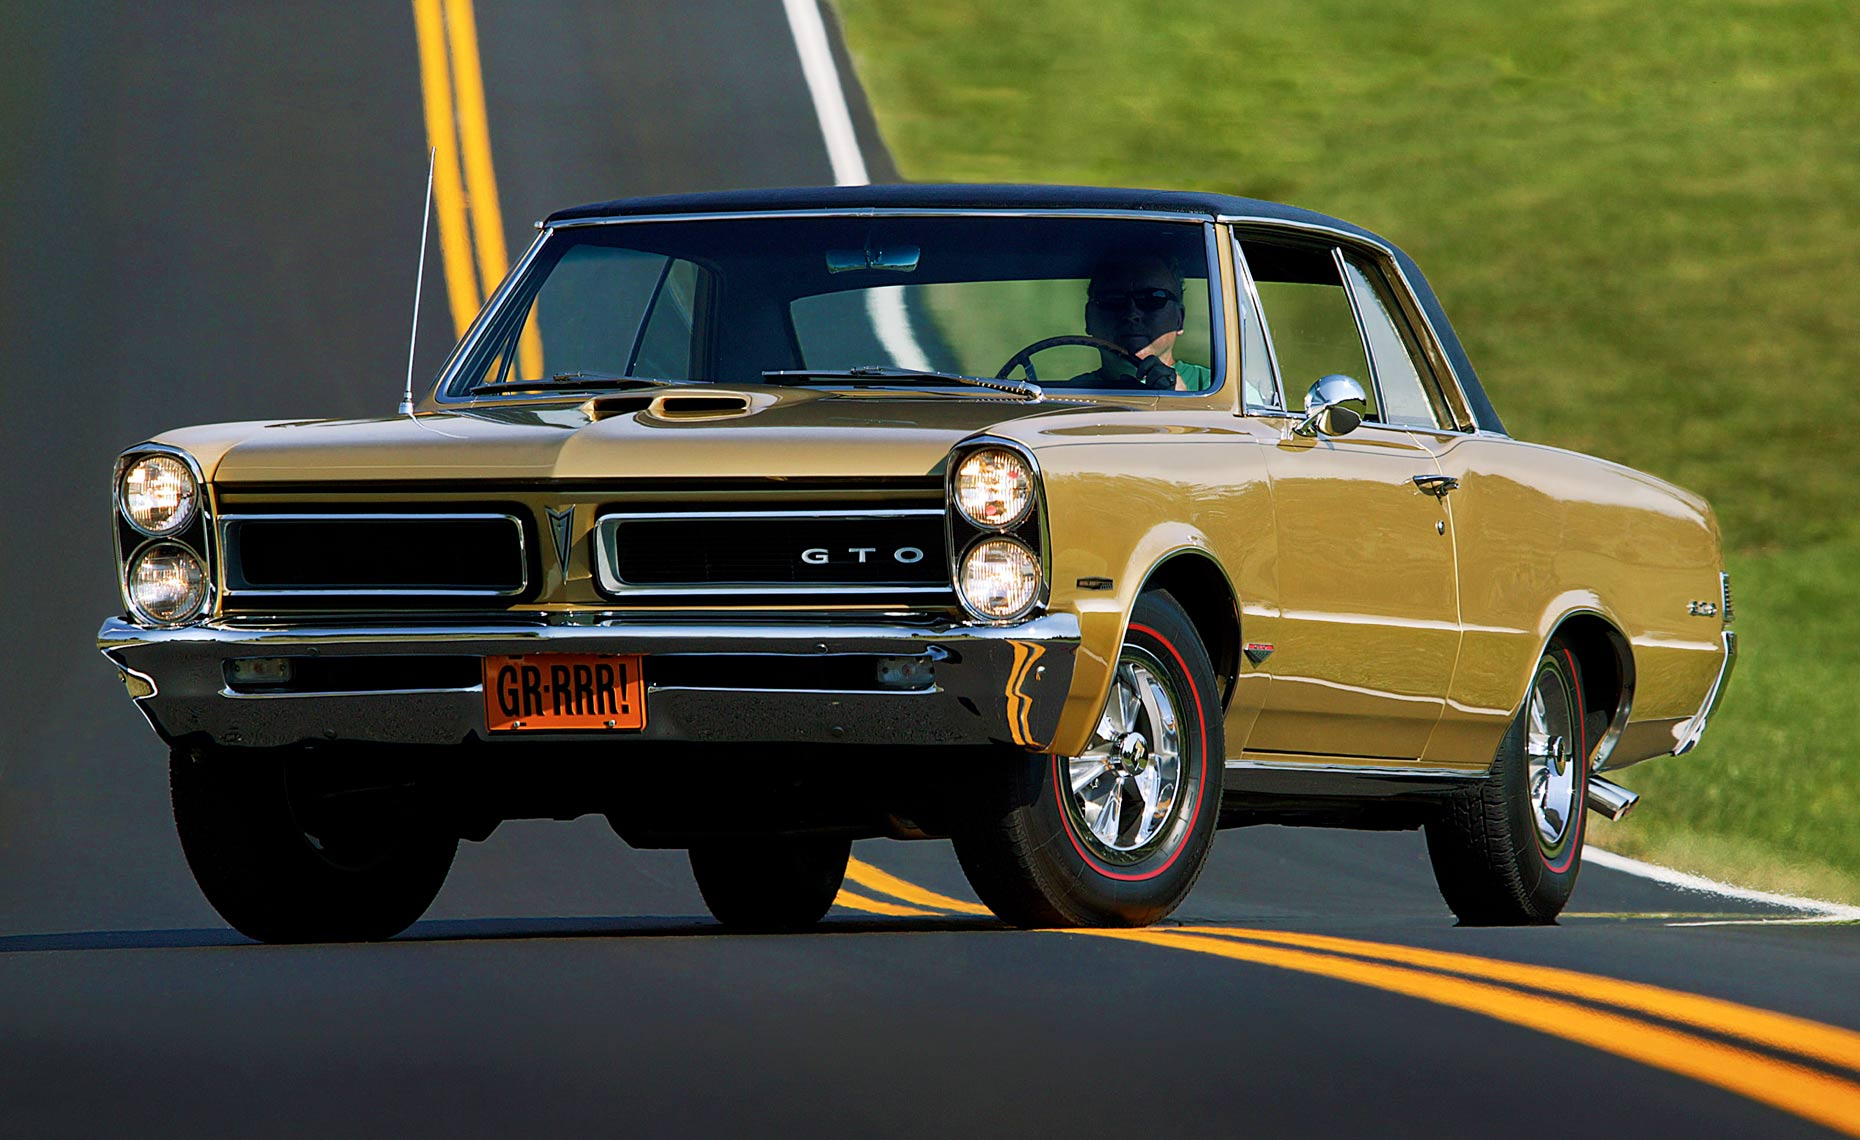 Bruces-gold-GTO-